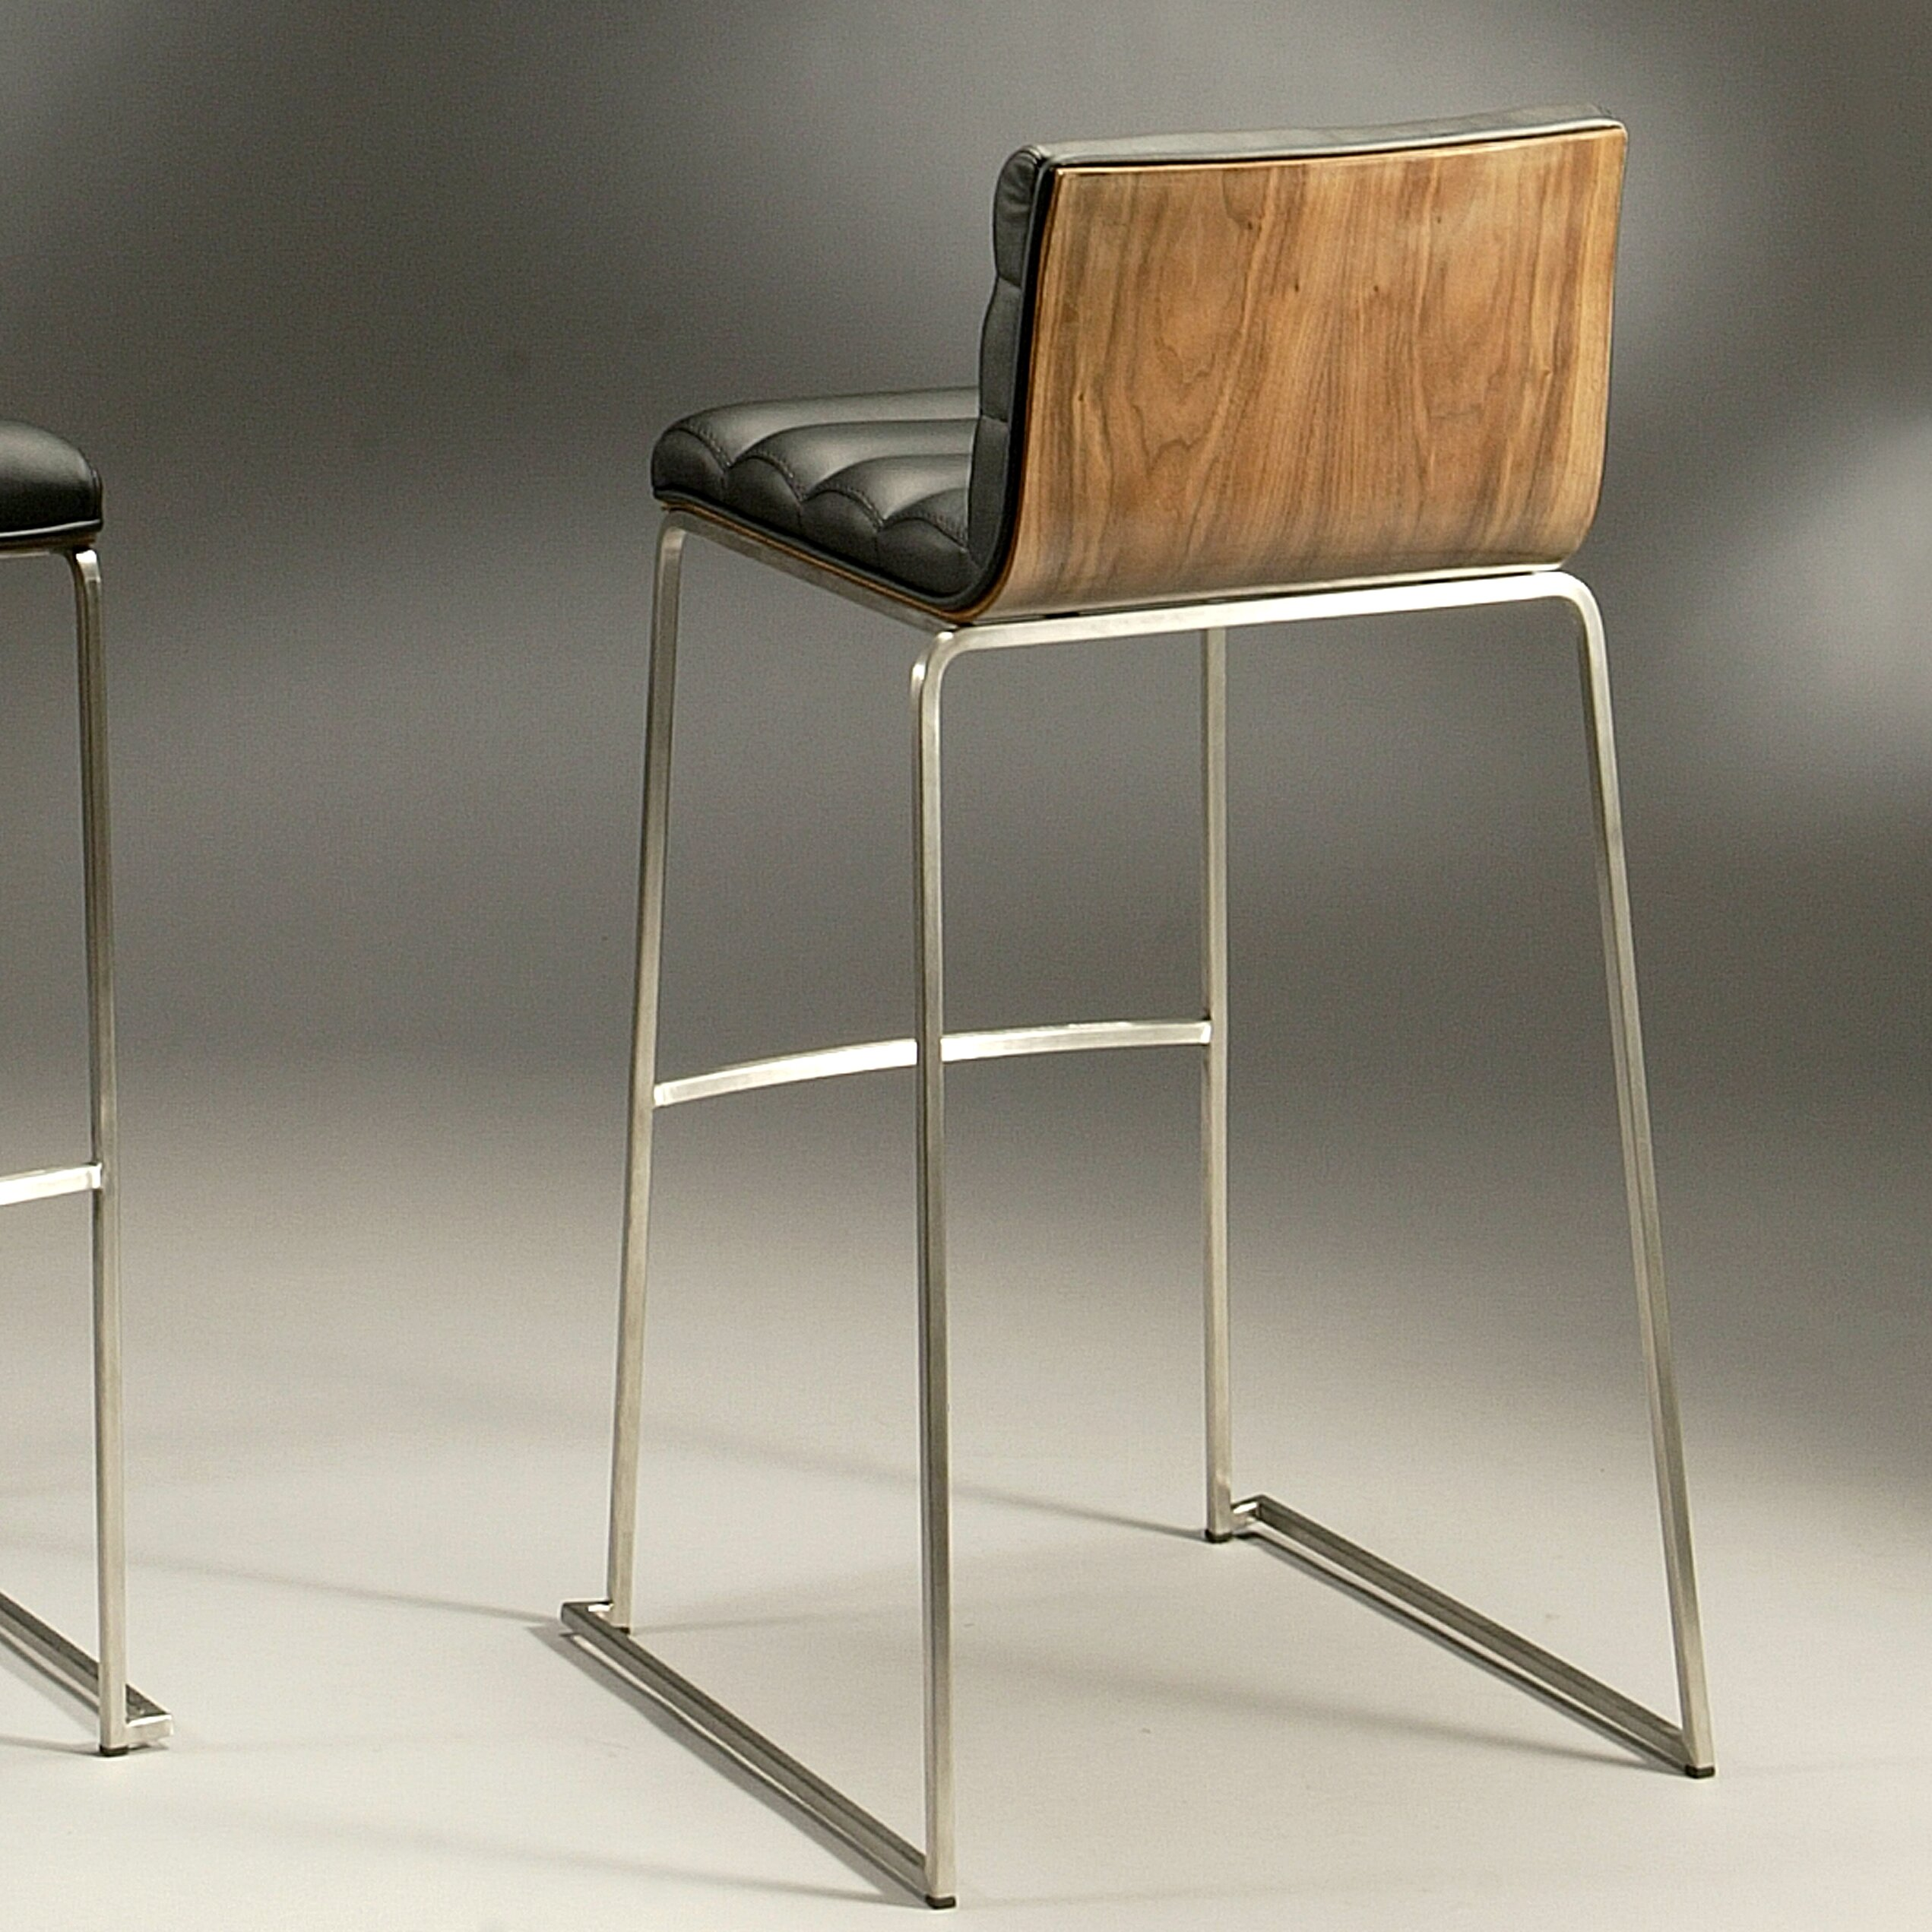 Amazing photo of Dominica 30.25 Bar Stool with Cushion.jpg with #8E643D color and 2542x2542 pixels